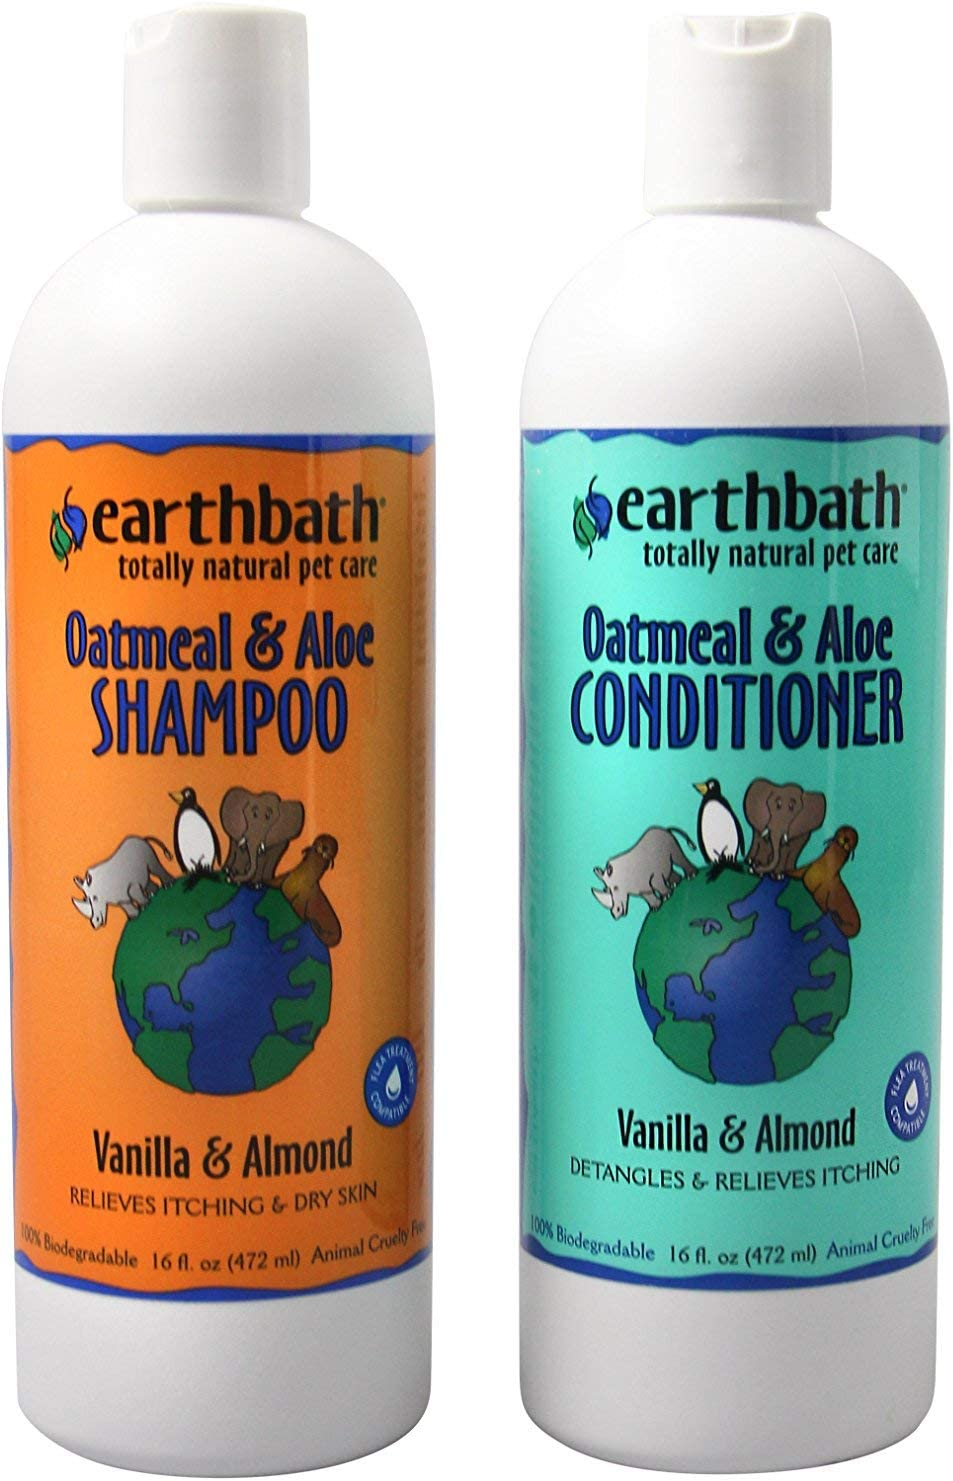 Earthbath Oatmeal & Aloe Shampoo / Conditioner Bundle (Vanilla & Almond) - (1) 16 OZ Shampoo, (1) 16 OZ Conditioner